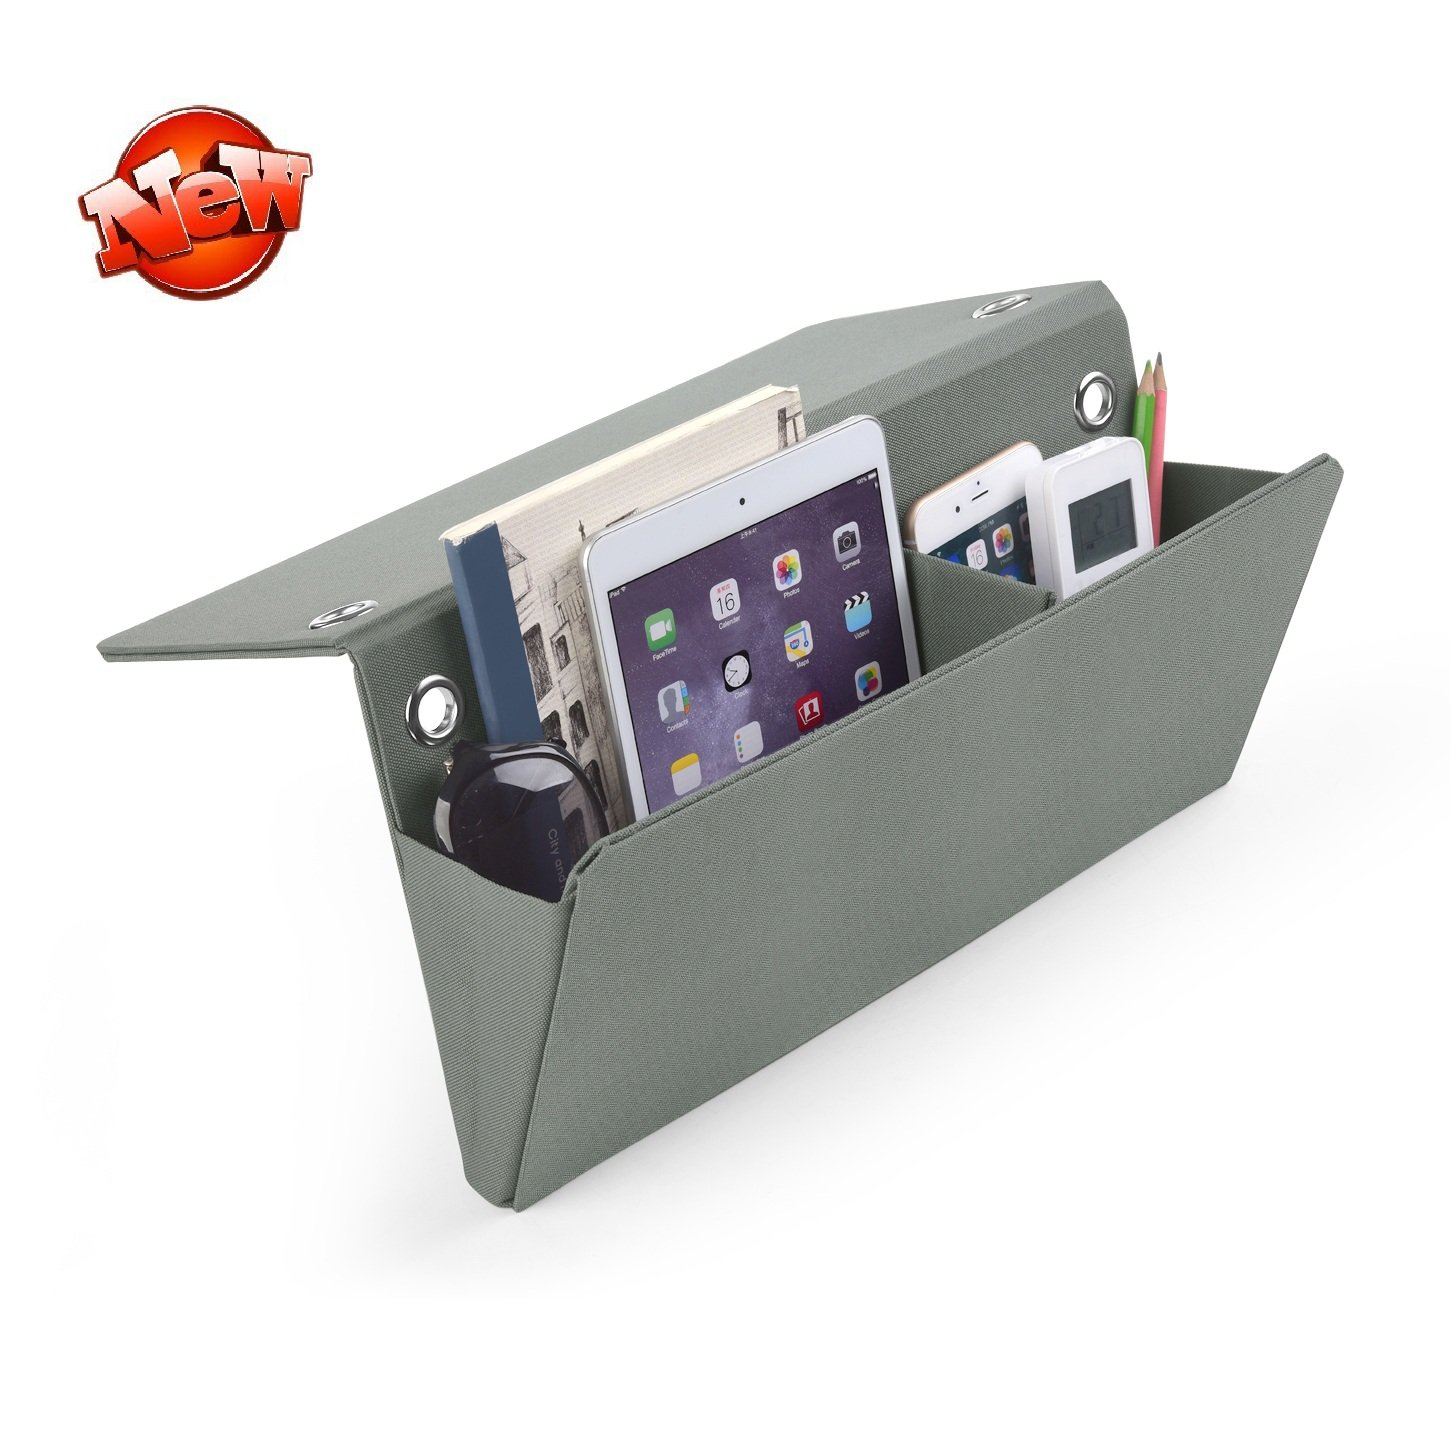 Bedside pocket bedside storage organizer caddy wall mount for Sofa organizer